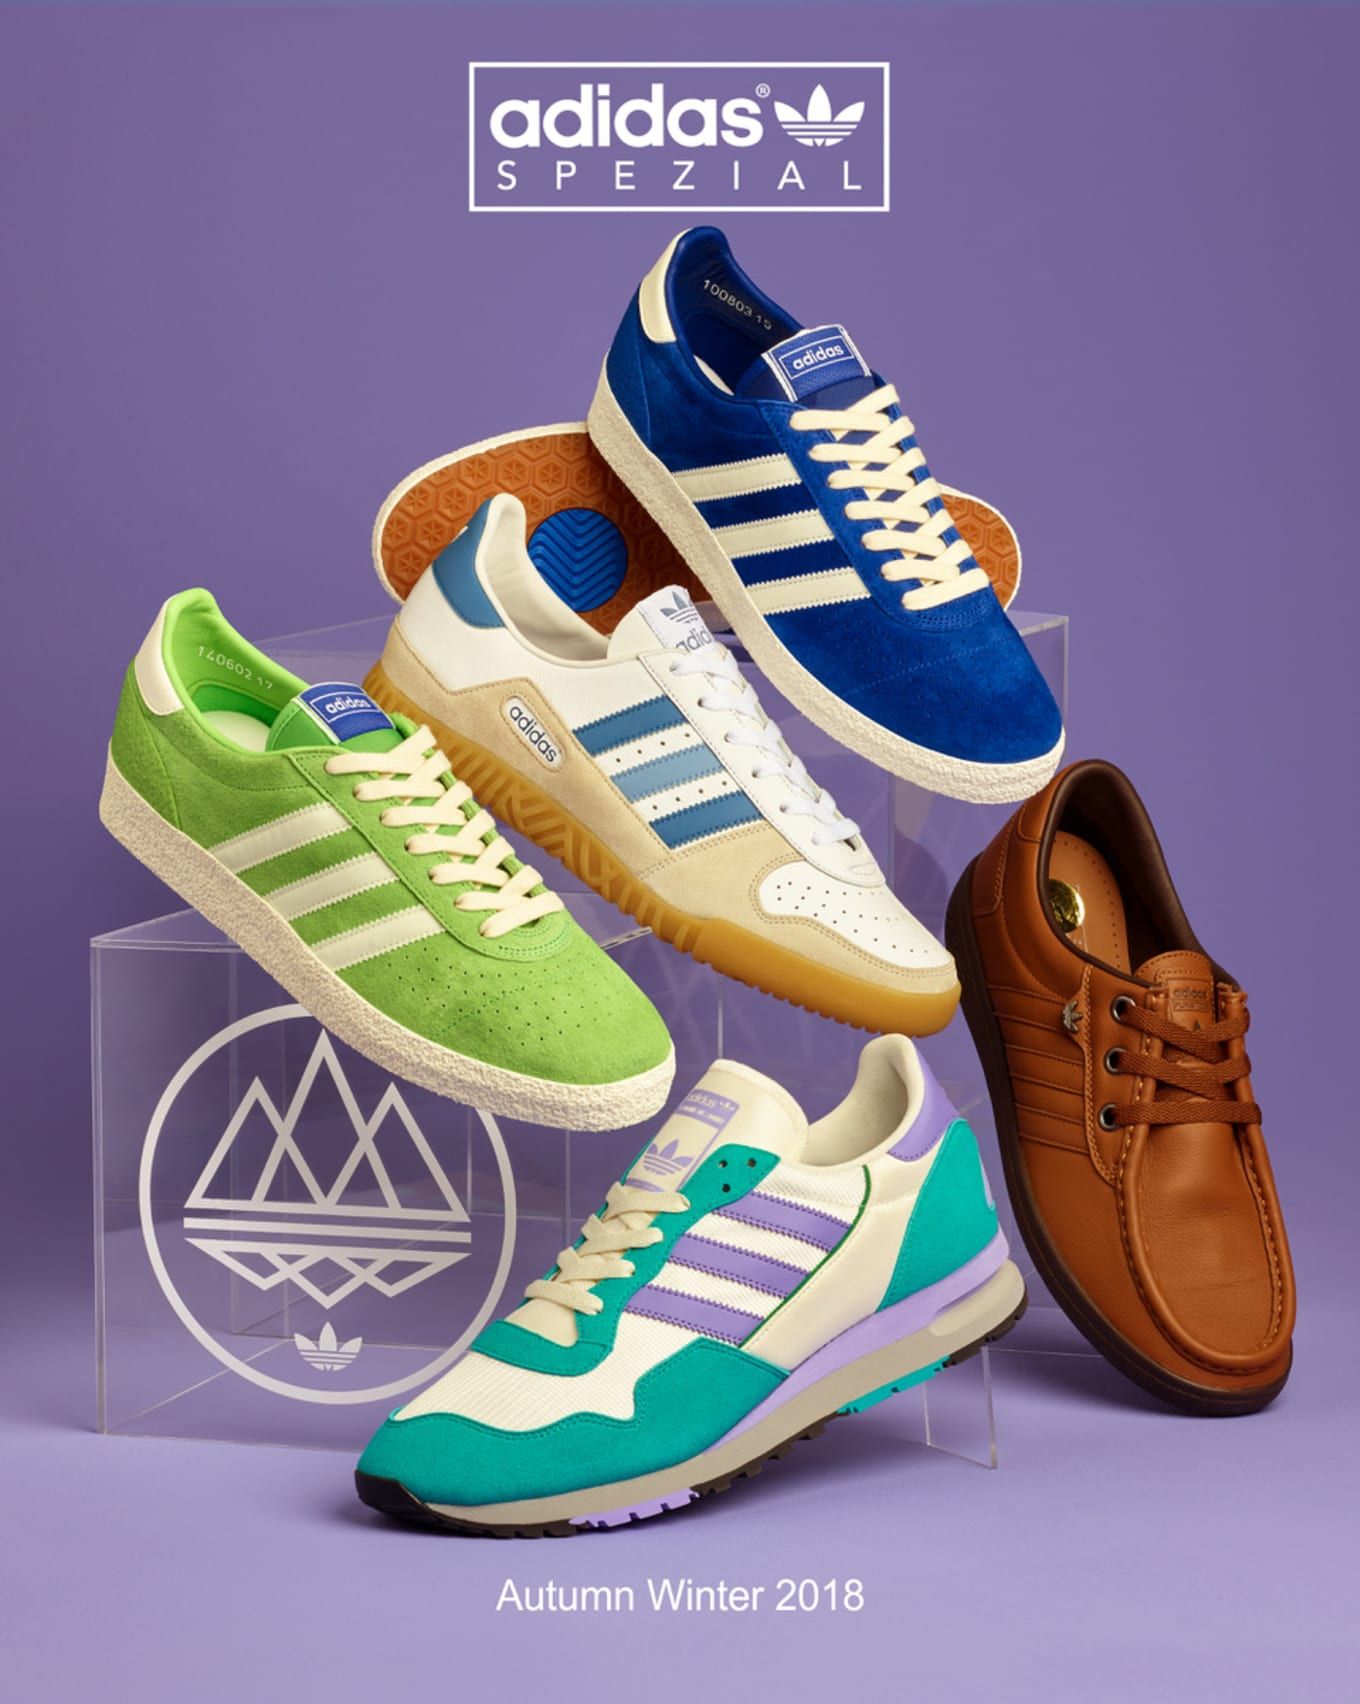 Adidas Spezial Is Alternative Those Tired Sneaker Culture